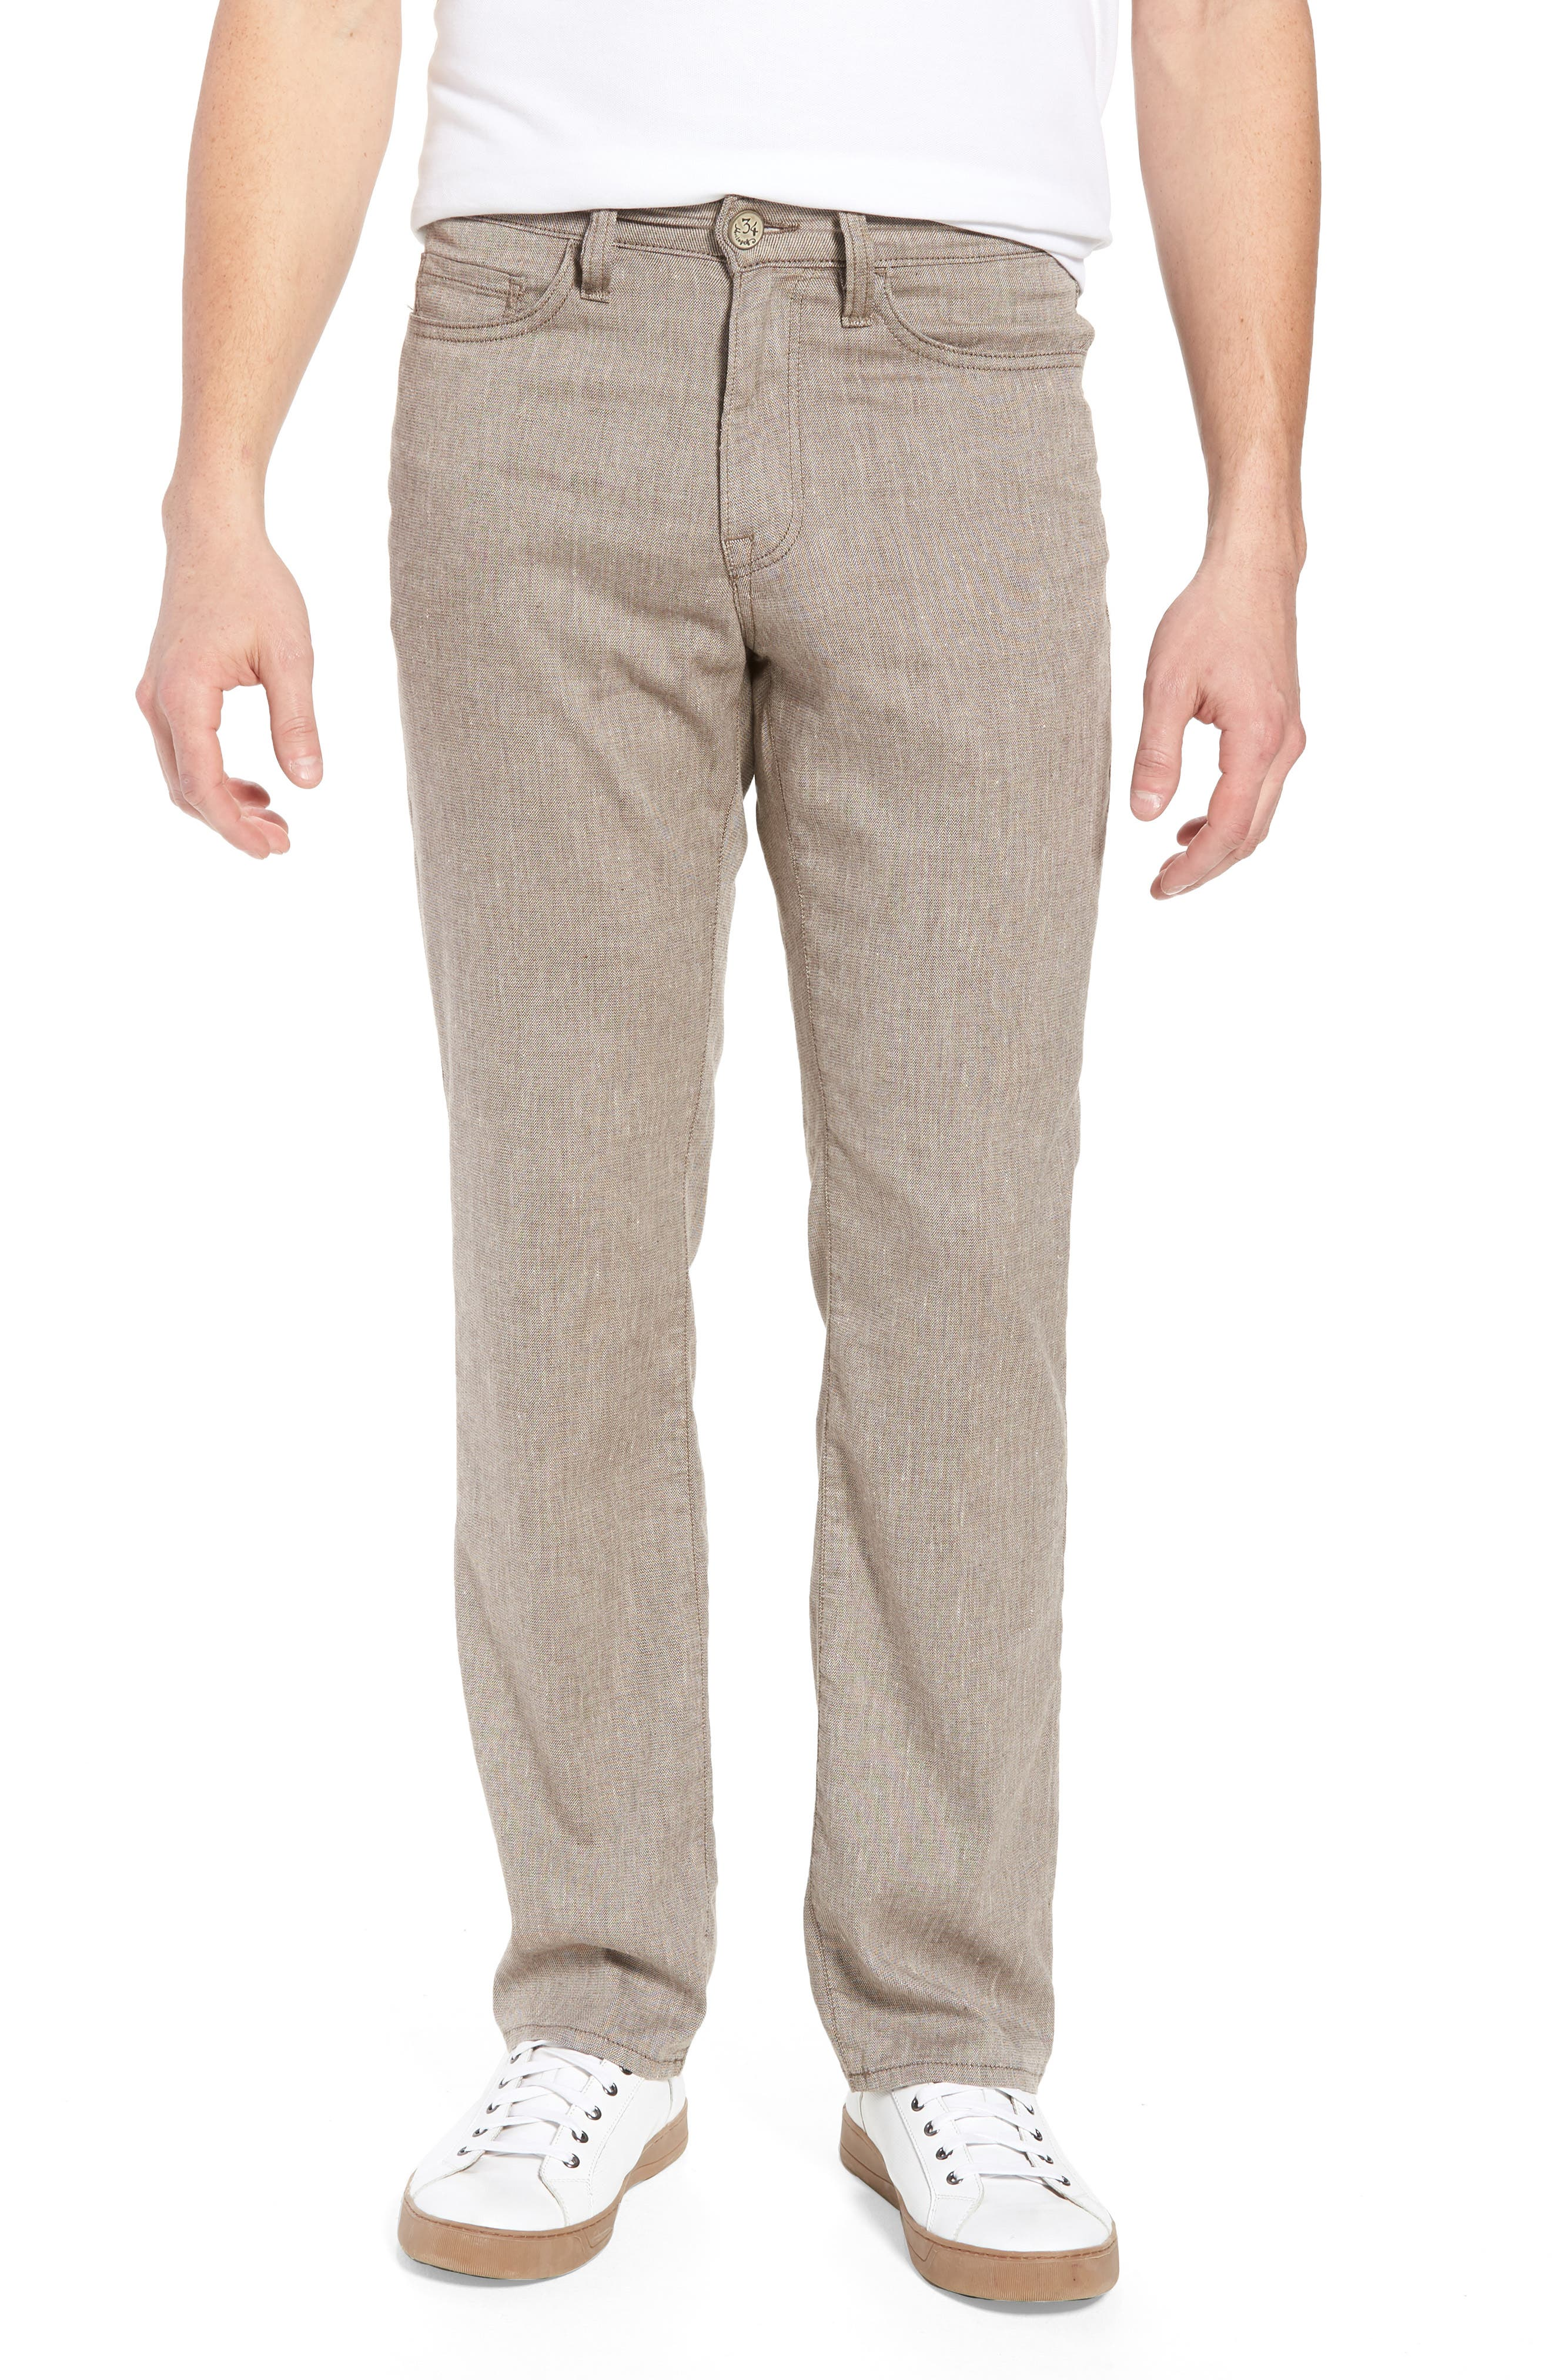 Charisma Relaxed Fit Pants,                         Main,                         color, 200